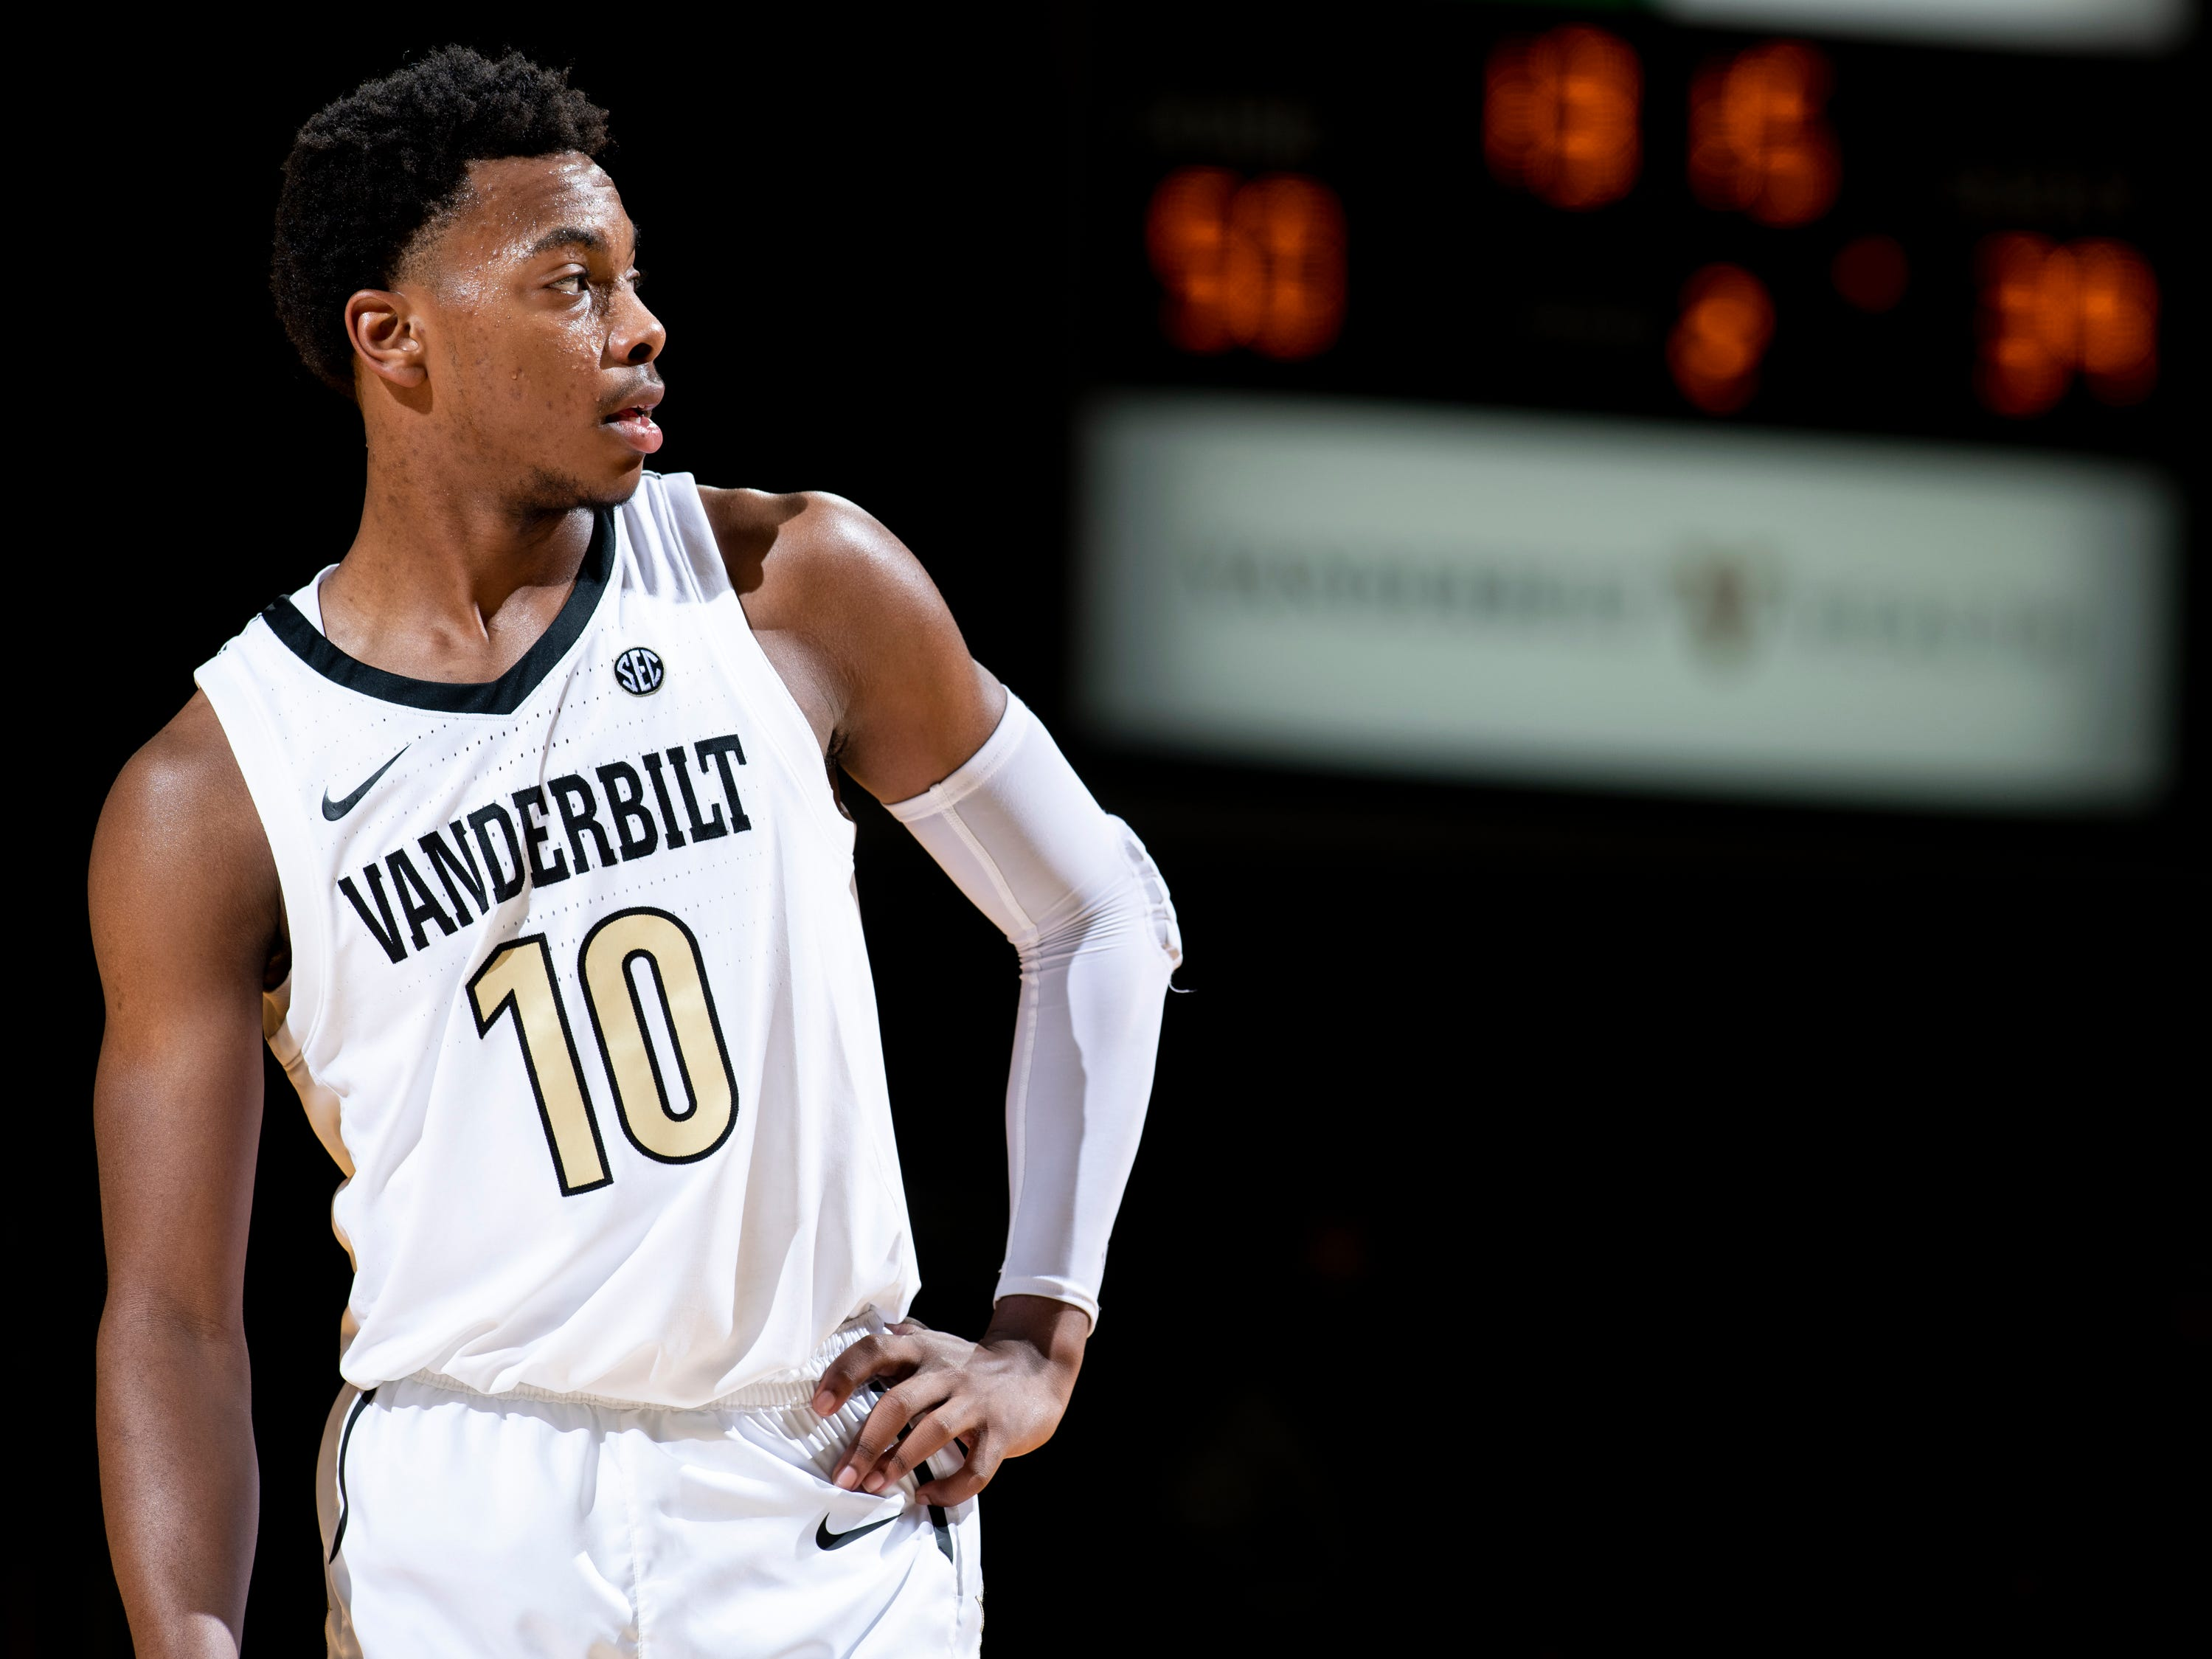 Vanderbilt guard Darius Garland (10) waits for play to resume against Alcorn State during the second half at Memorial Gym in Nashville, Tenn., Friday, Nov. 16, 2018.